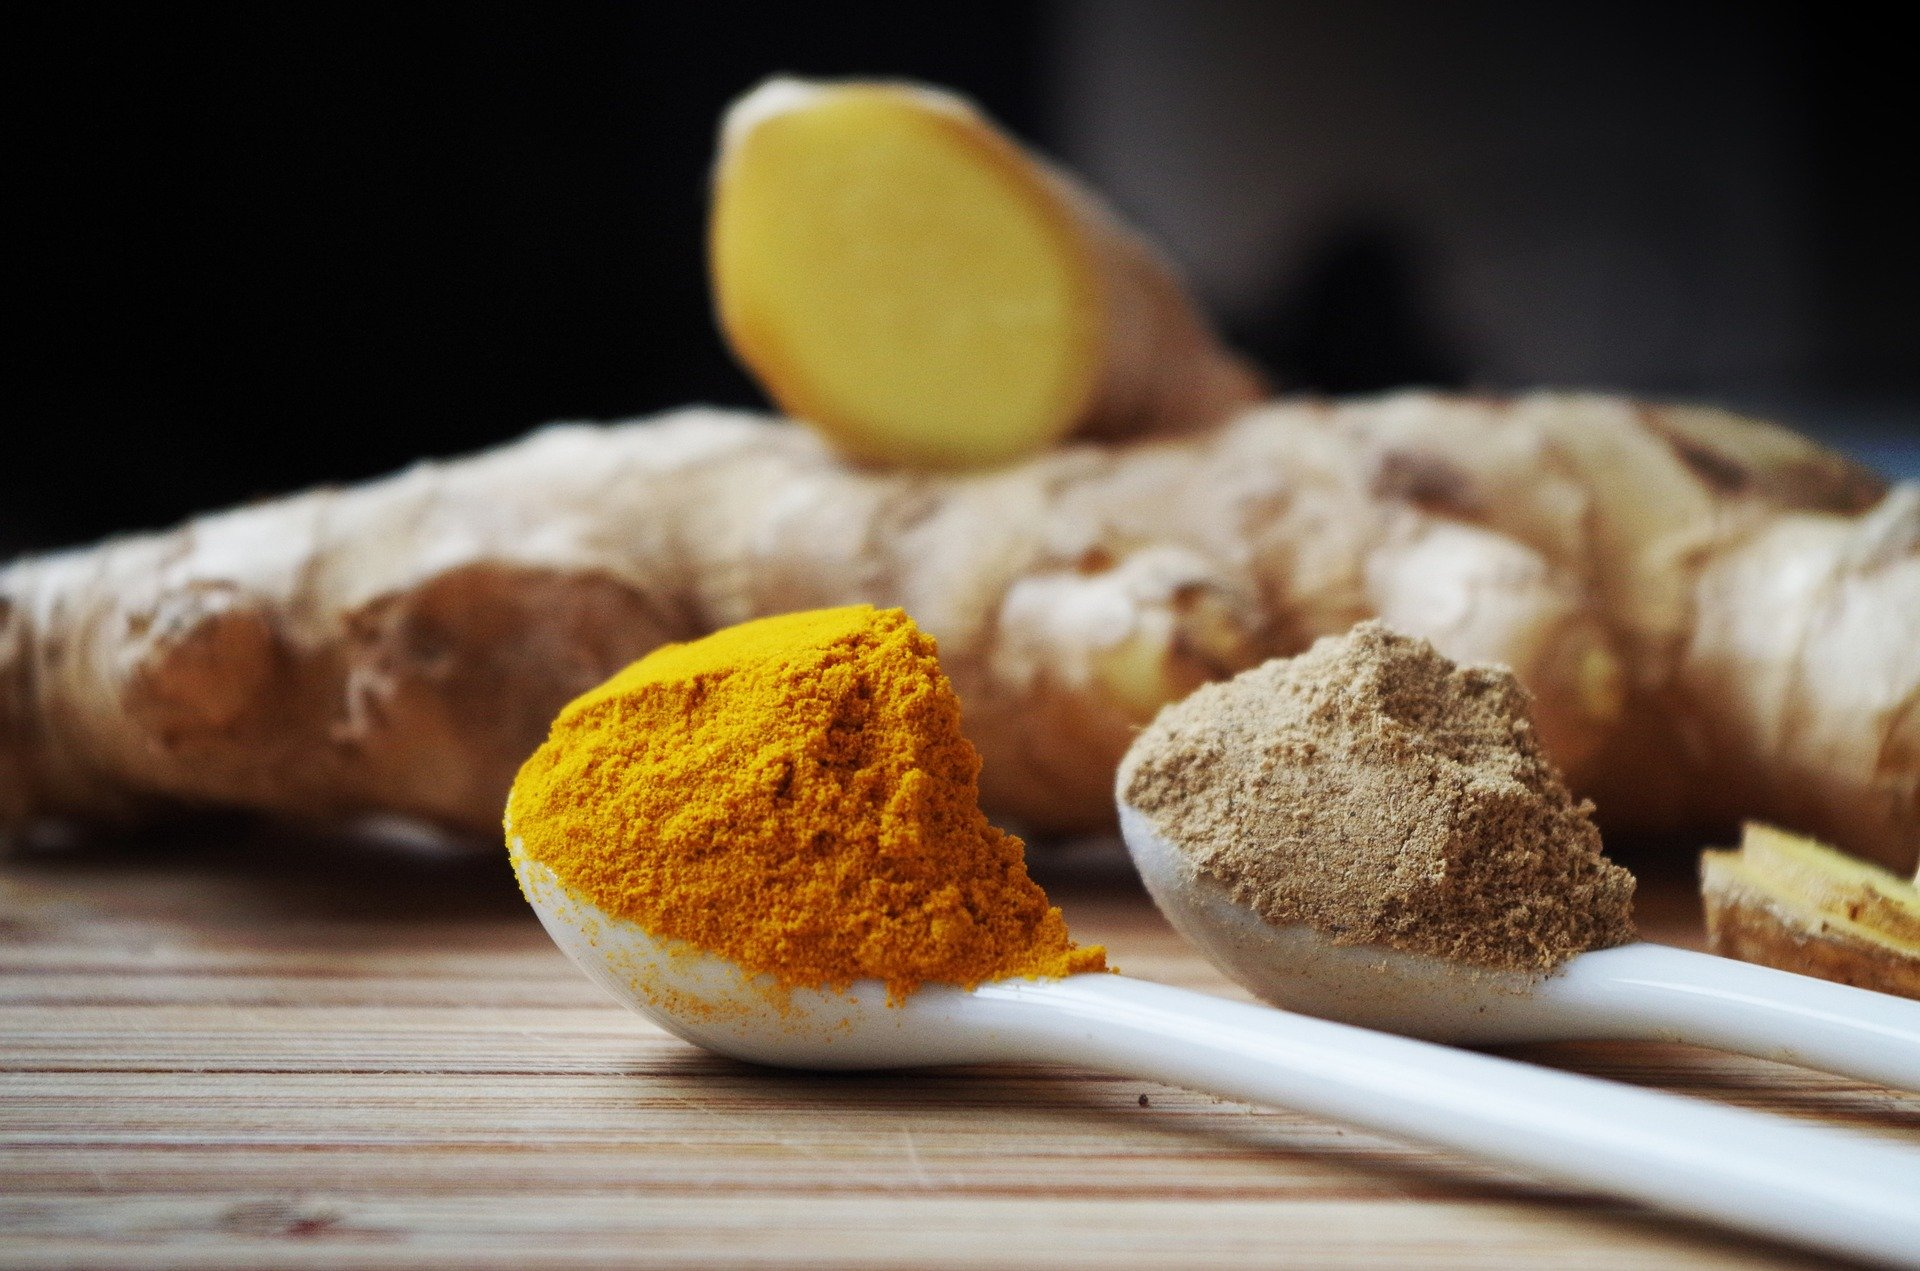 What Are Benefits Of Eating Ginger Everyday